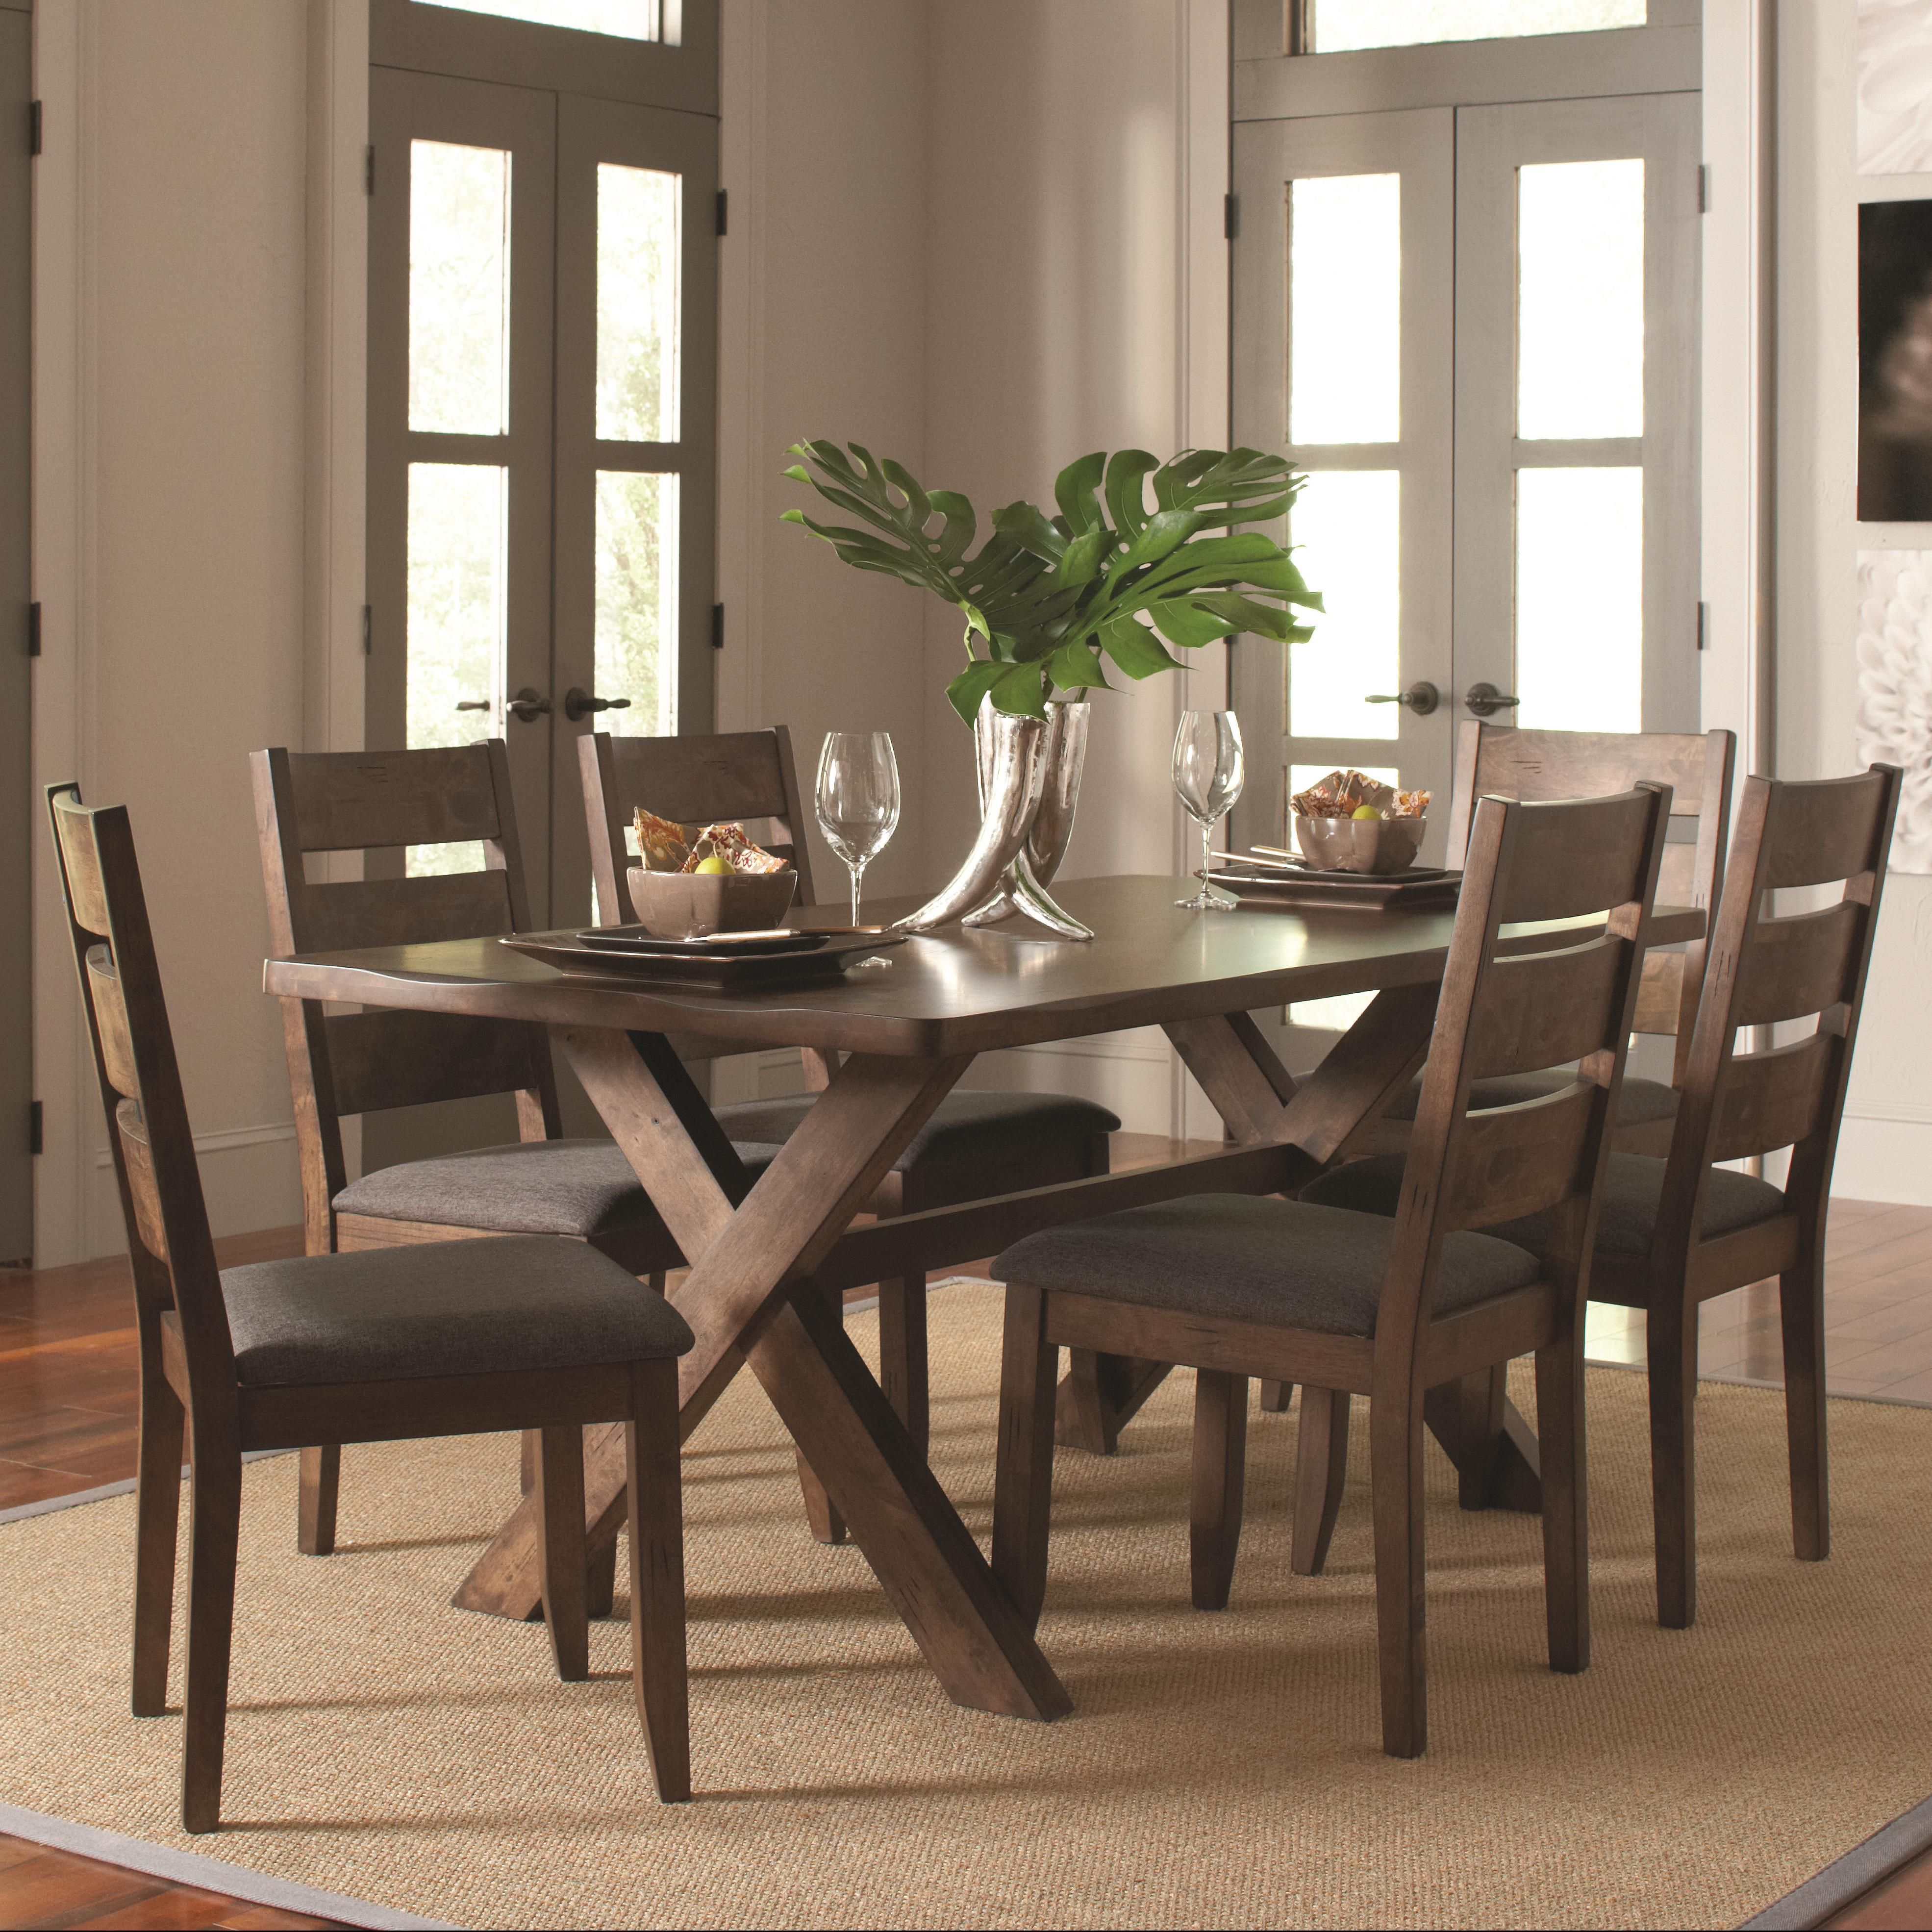 Alston Rustic 7 Pc Table & Chair Set by Coaster Trestle